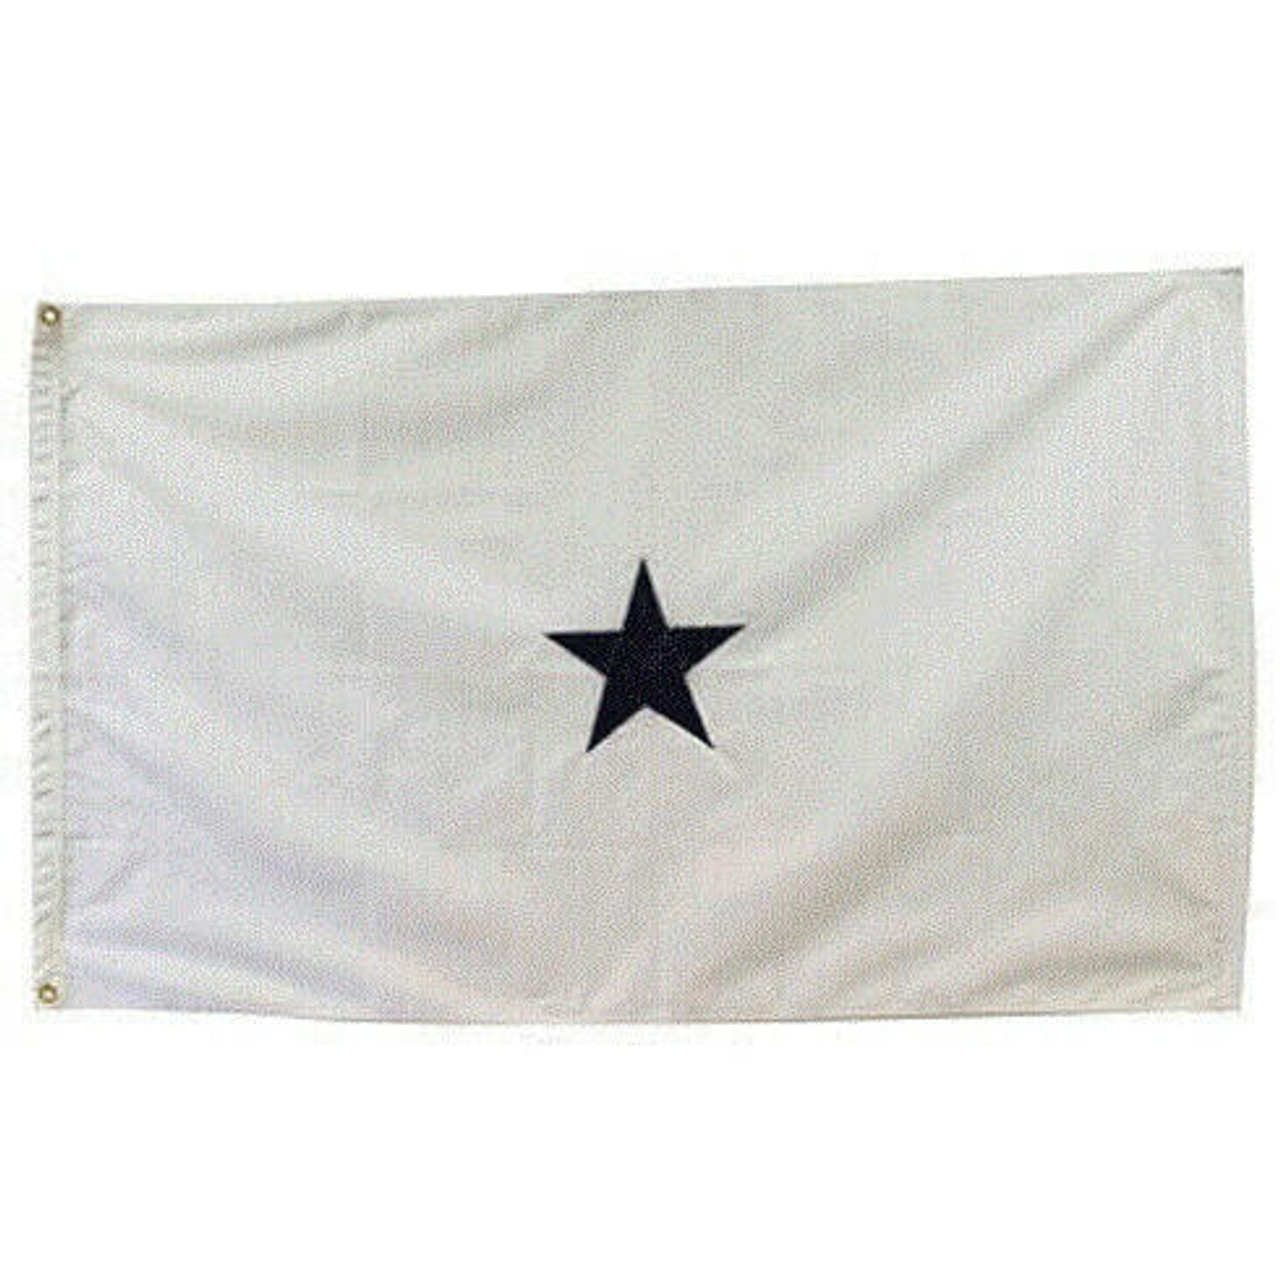 Navy Non-Seagoing 1 Star Officer Flag. White flag with blue 5 point star at center